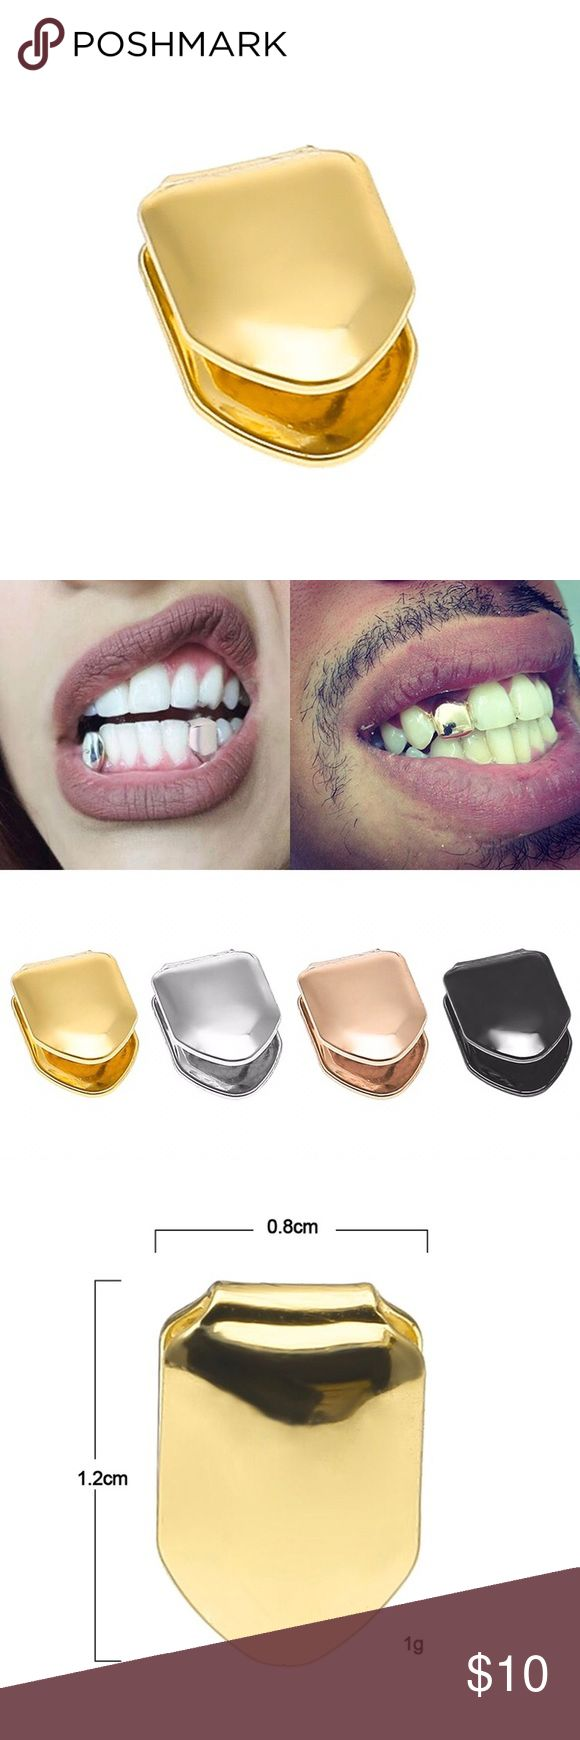 14k gold plated Hip Hop Tooth Cap Grillz Set Hip Hop 14k gold plated Tooth Cap Grillz Set  14k gold plated Package Included: 1 * Single Tooth Grillz 1 * English manual  This grills are lead and nickel free, FDA approved (21 CFR 175,300), and safe to wear inside your mouth. Tsv jewelers Accessories Jewelry